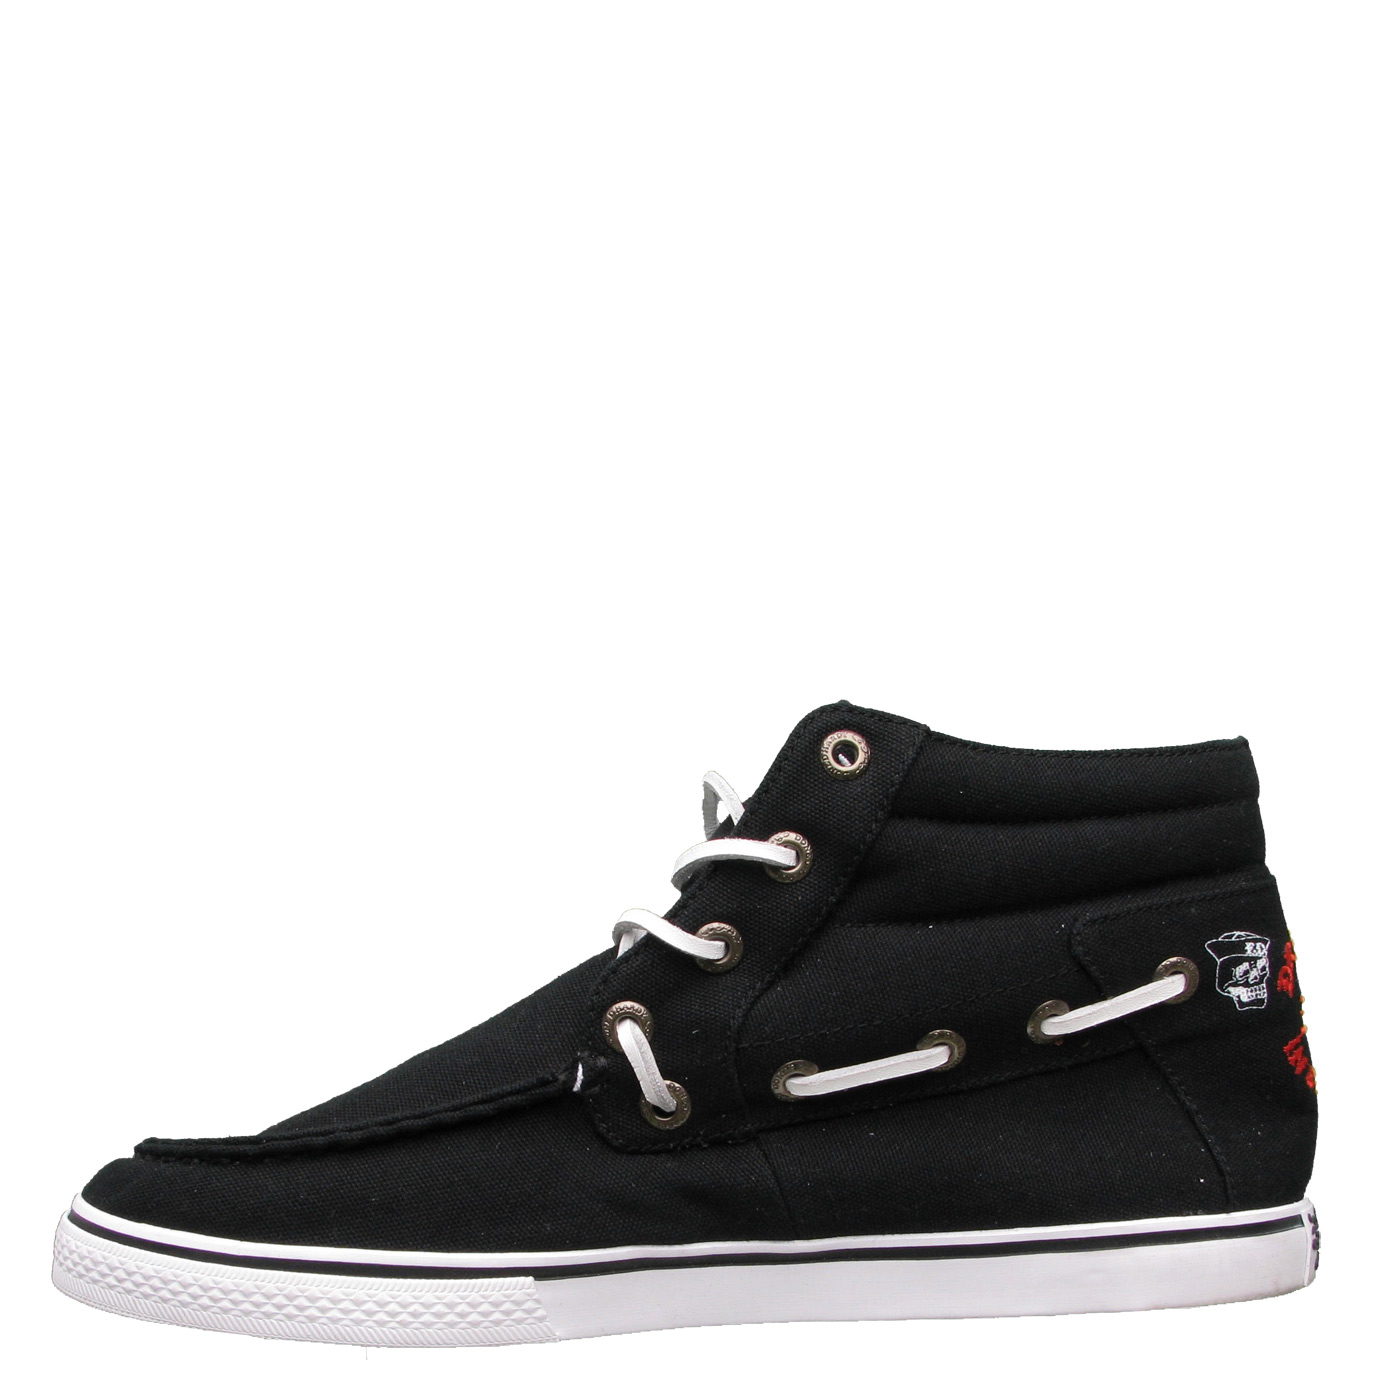 Ed Hardy La Paz Highrise Boat Shoe for Men - Black